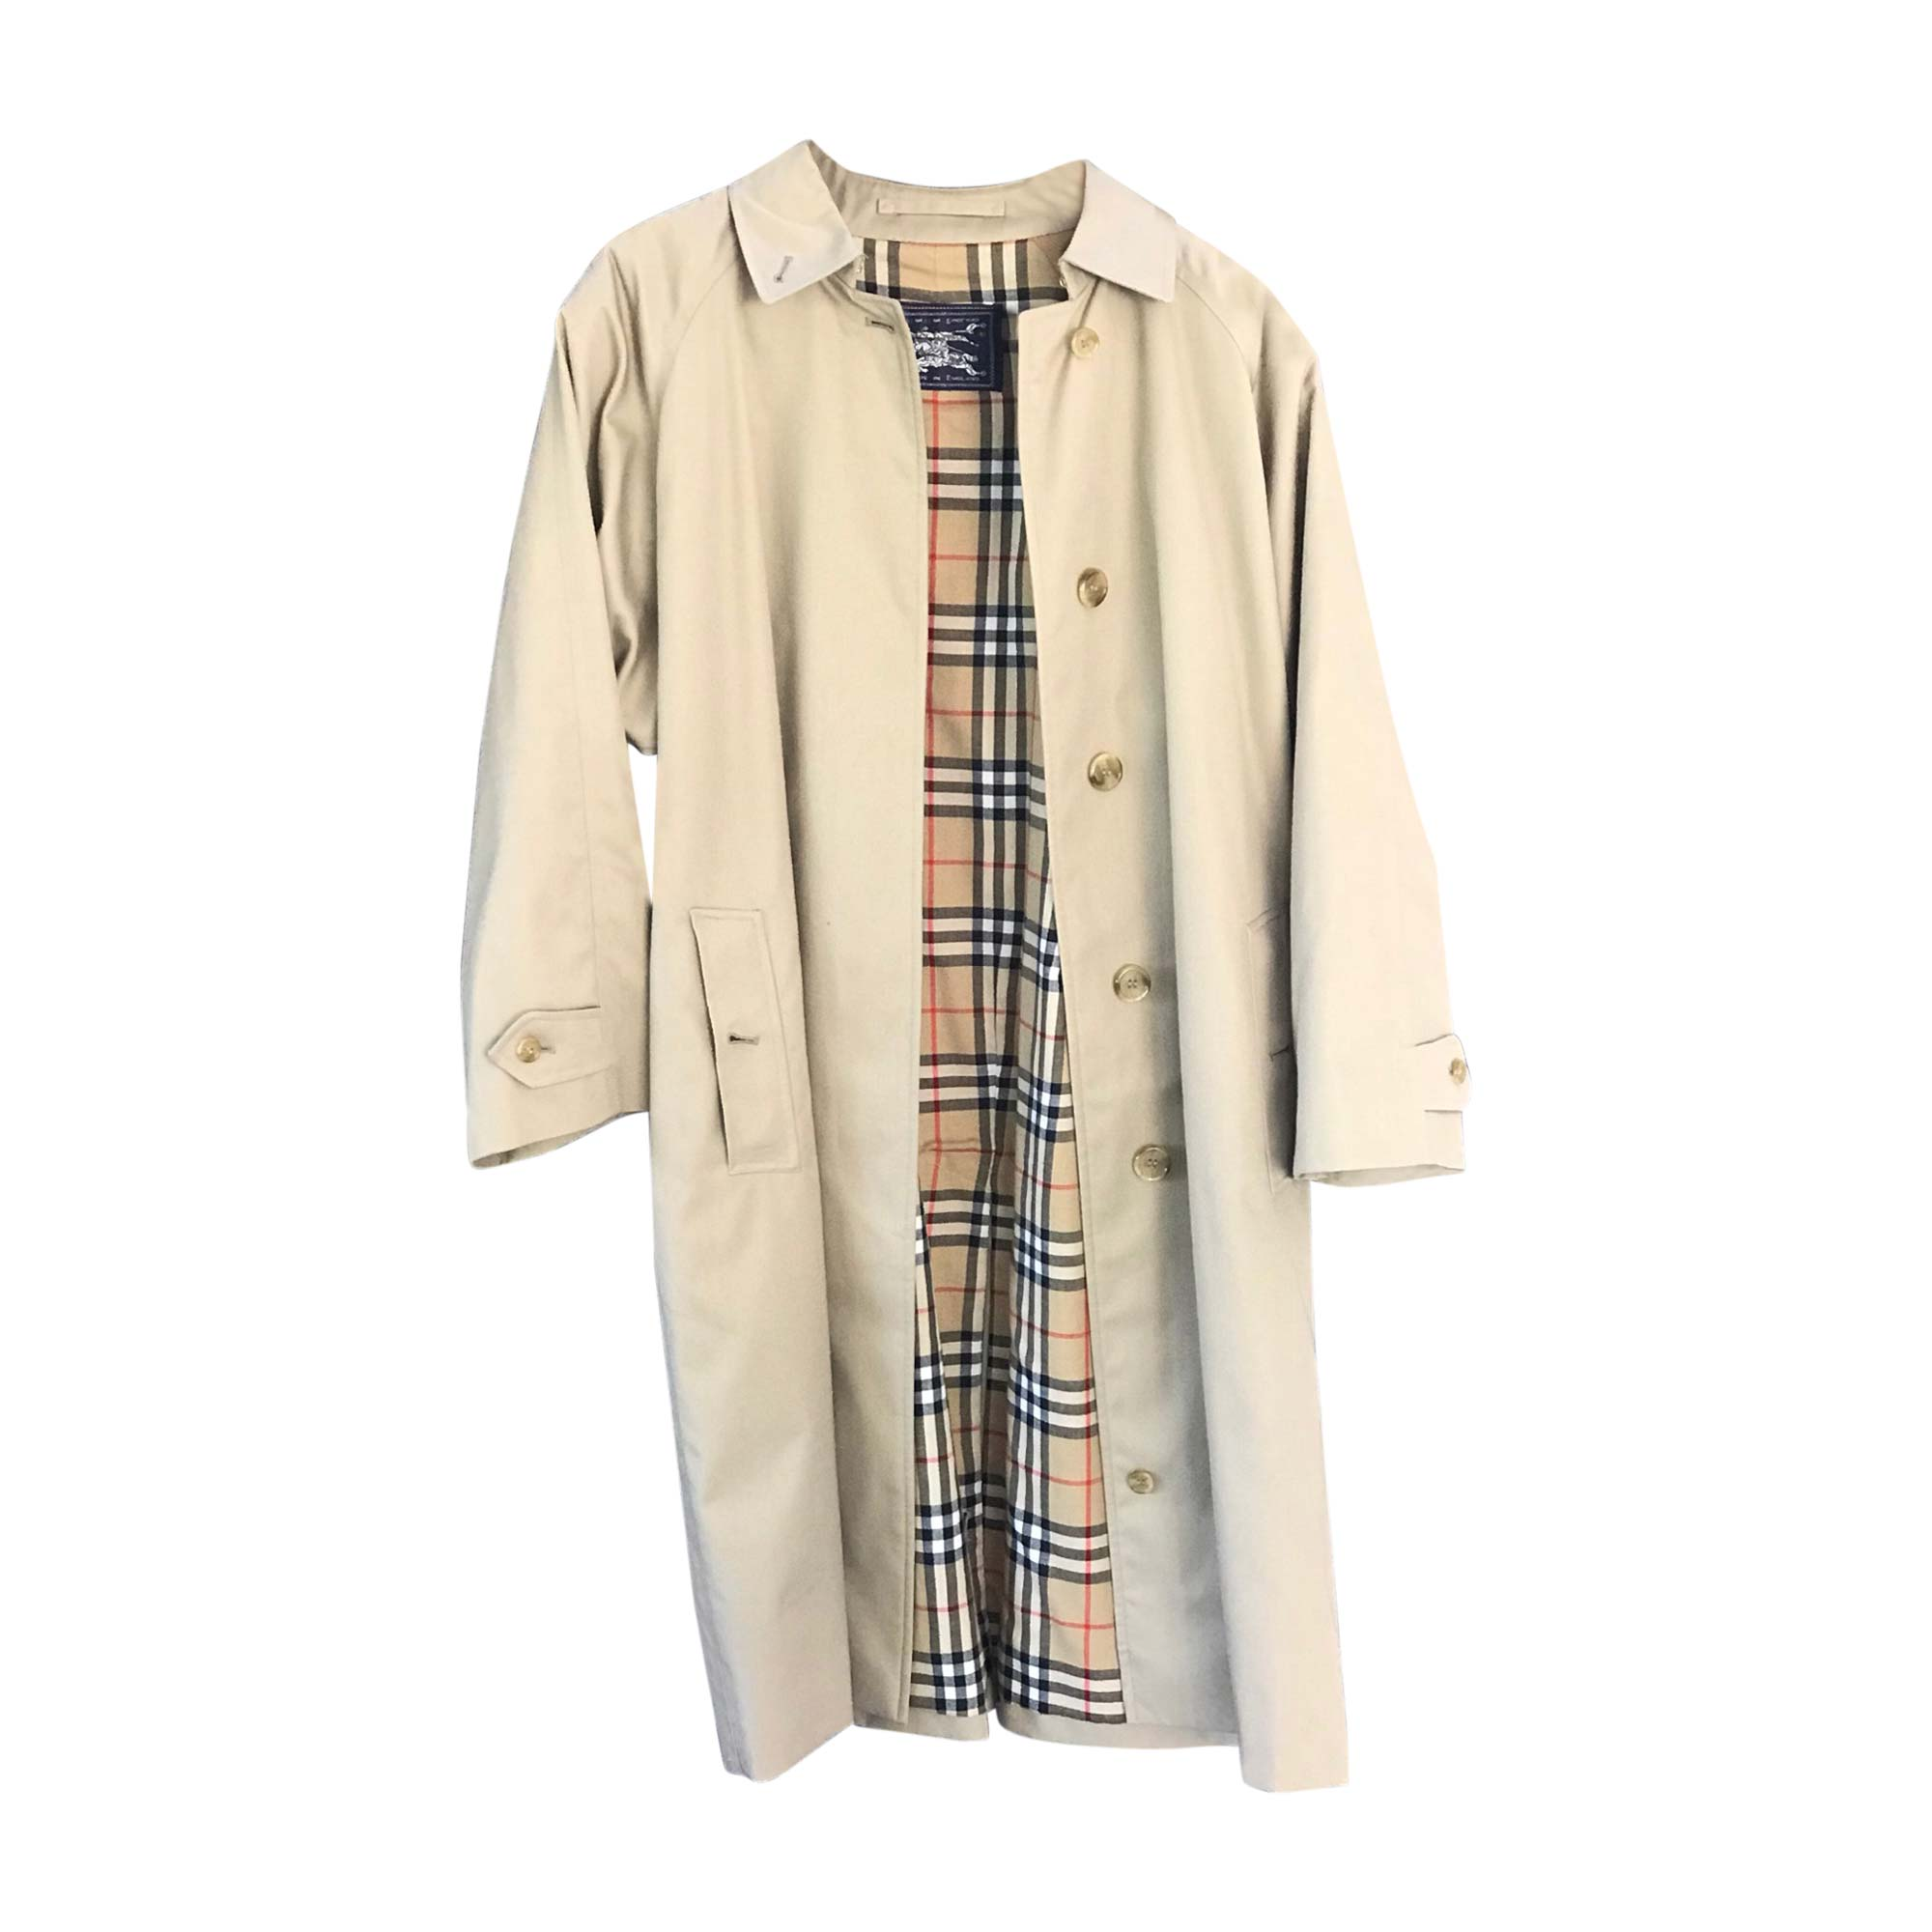 Imperméable, trench BURBERRY 38 (M, T2) beige - 7826510 5530831f8ed